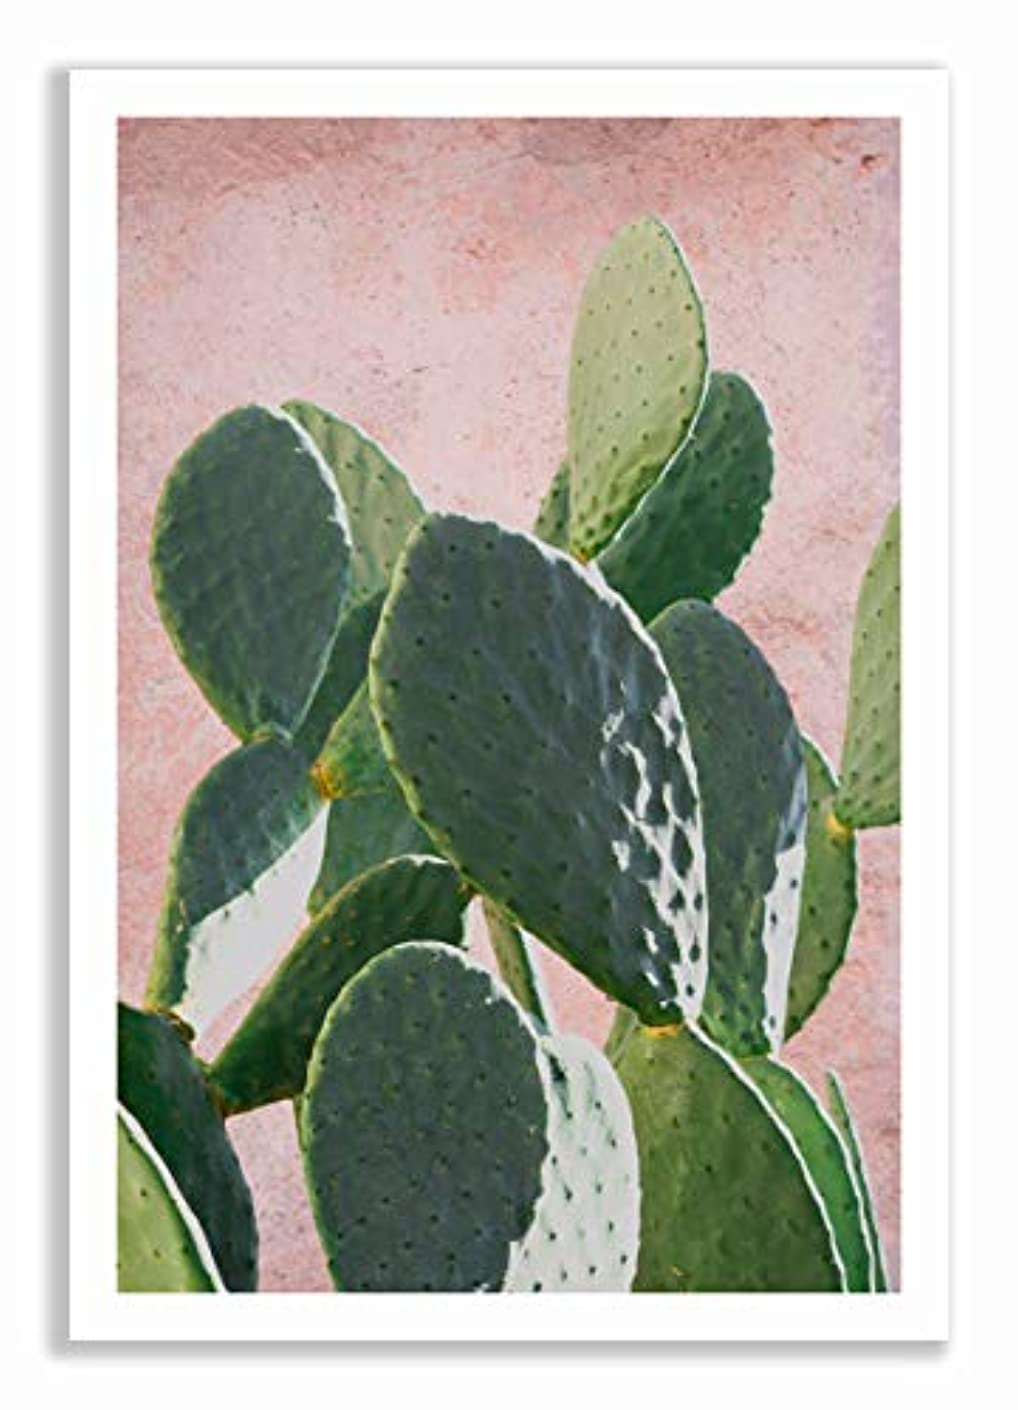 Plant on Pink Barbarian Figurine, White Painted Wood Frame with Mount, Multicolored, 40x60